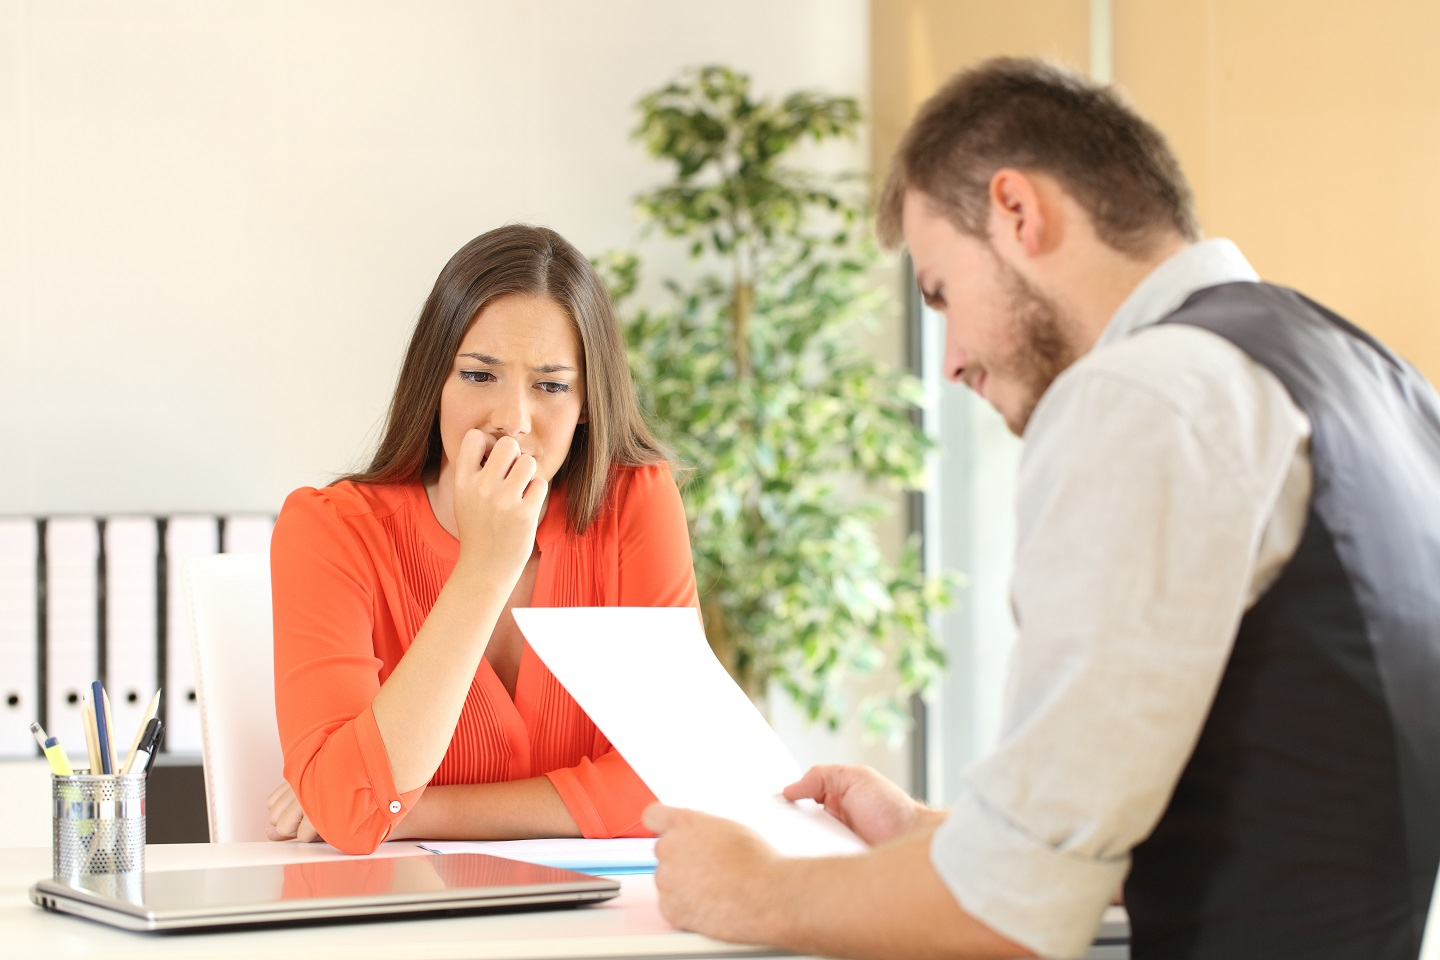 woman acting nervous in interview | Pivot HR Services